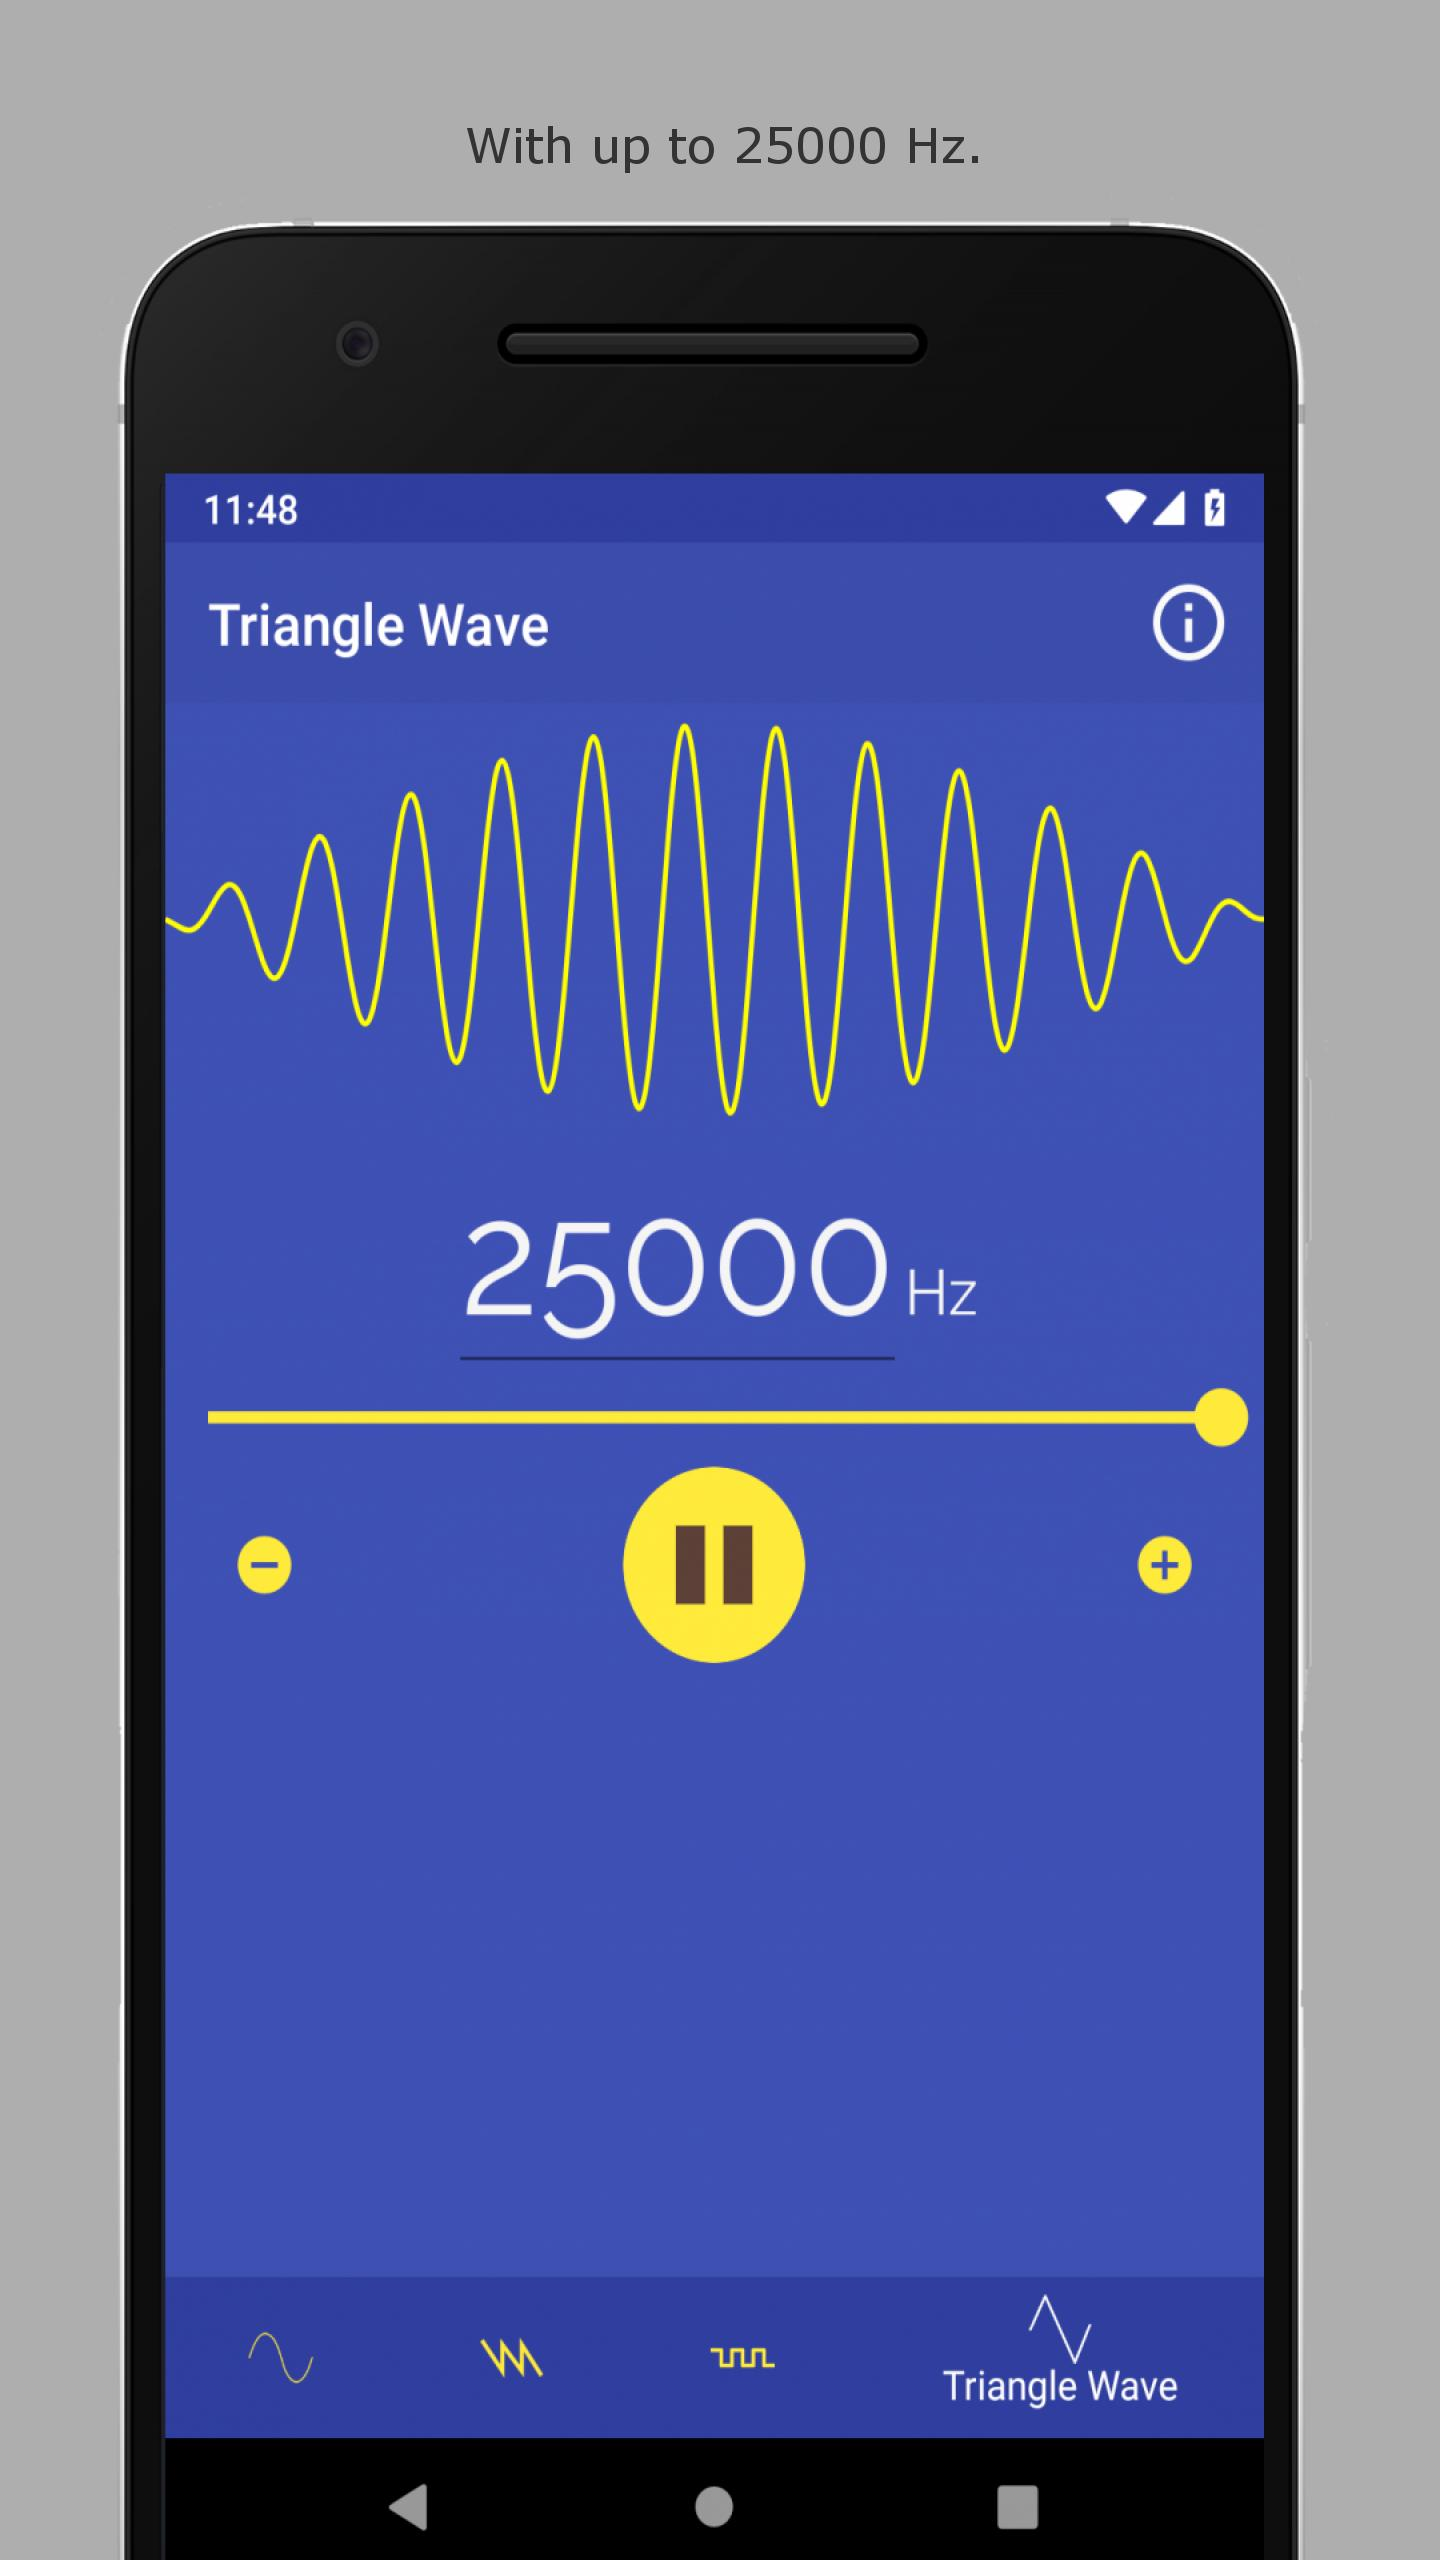 Sound Frequency Generator ♫ (1Hz - 25kHz) for Android - APK